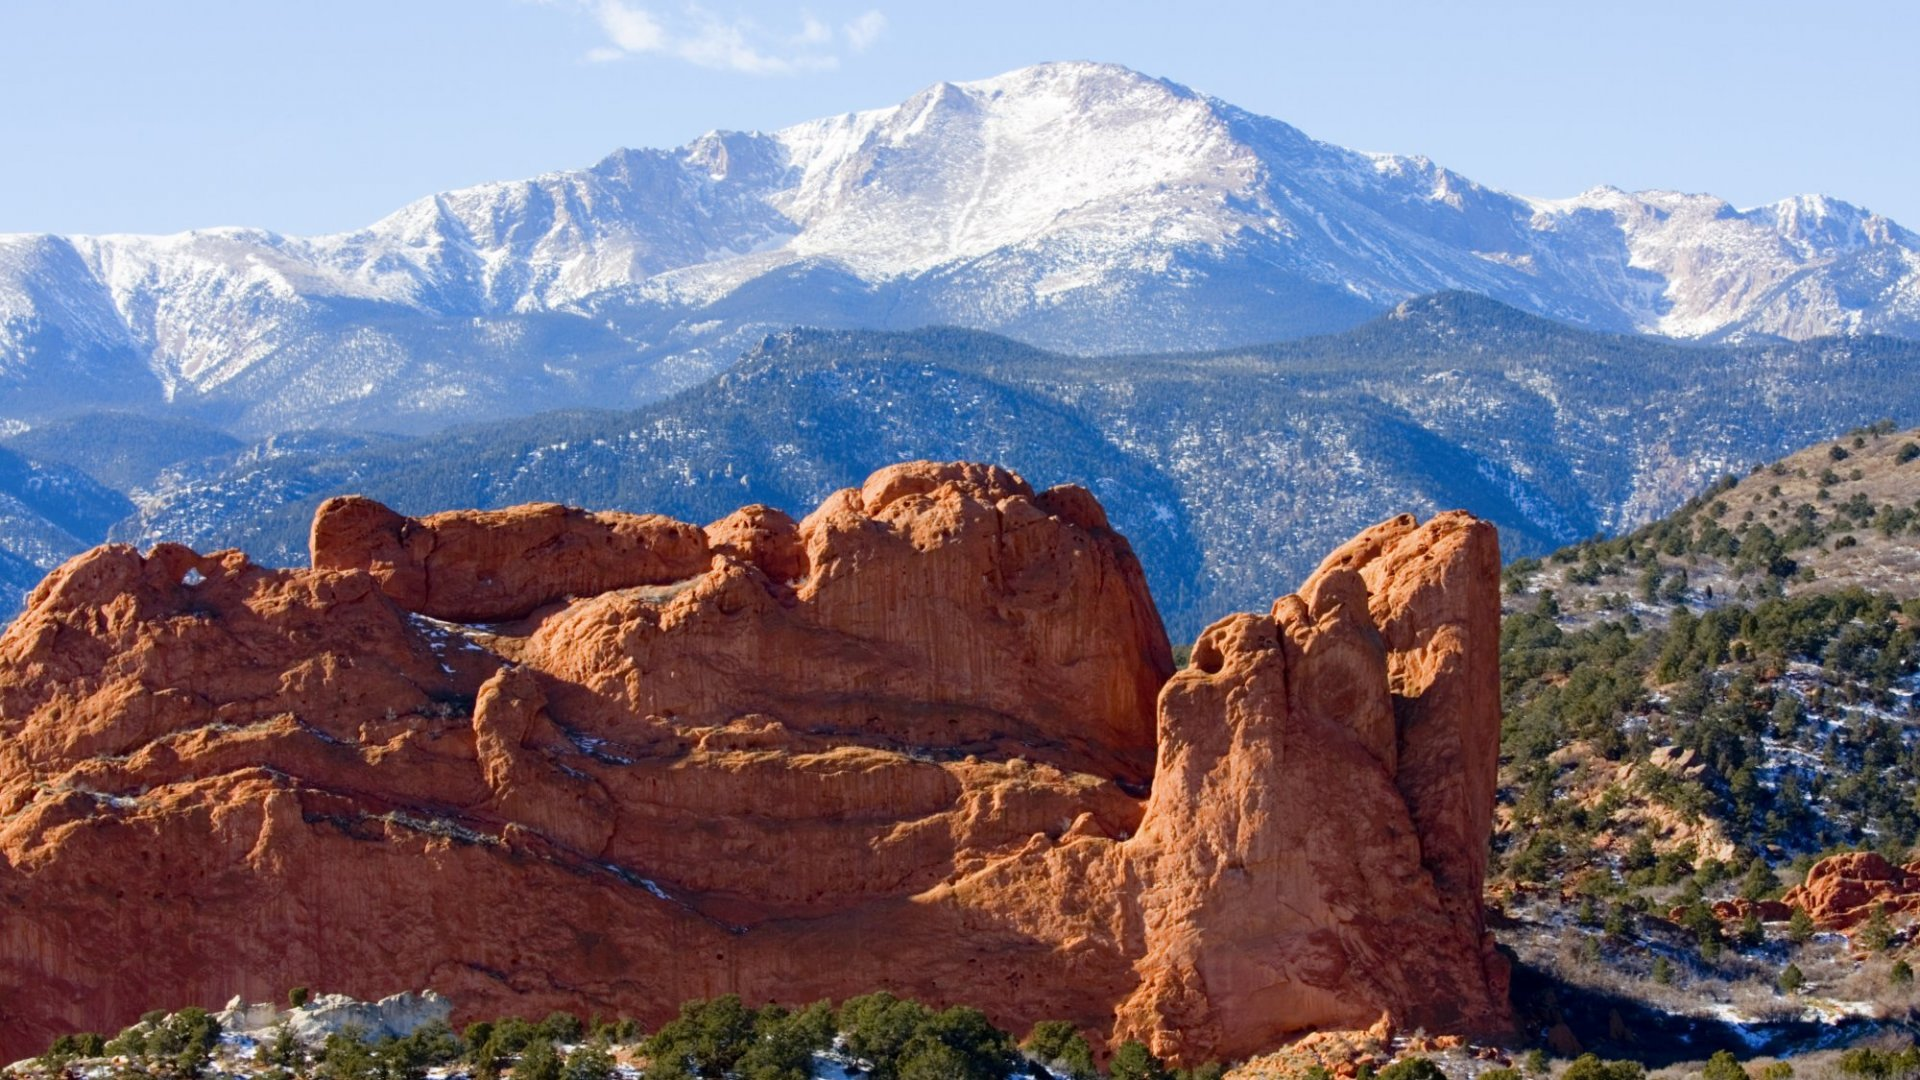 Air Force Tech, Mountains and Red Rocks Are Making Colorado Springs a New Entrepreneurial Destination